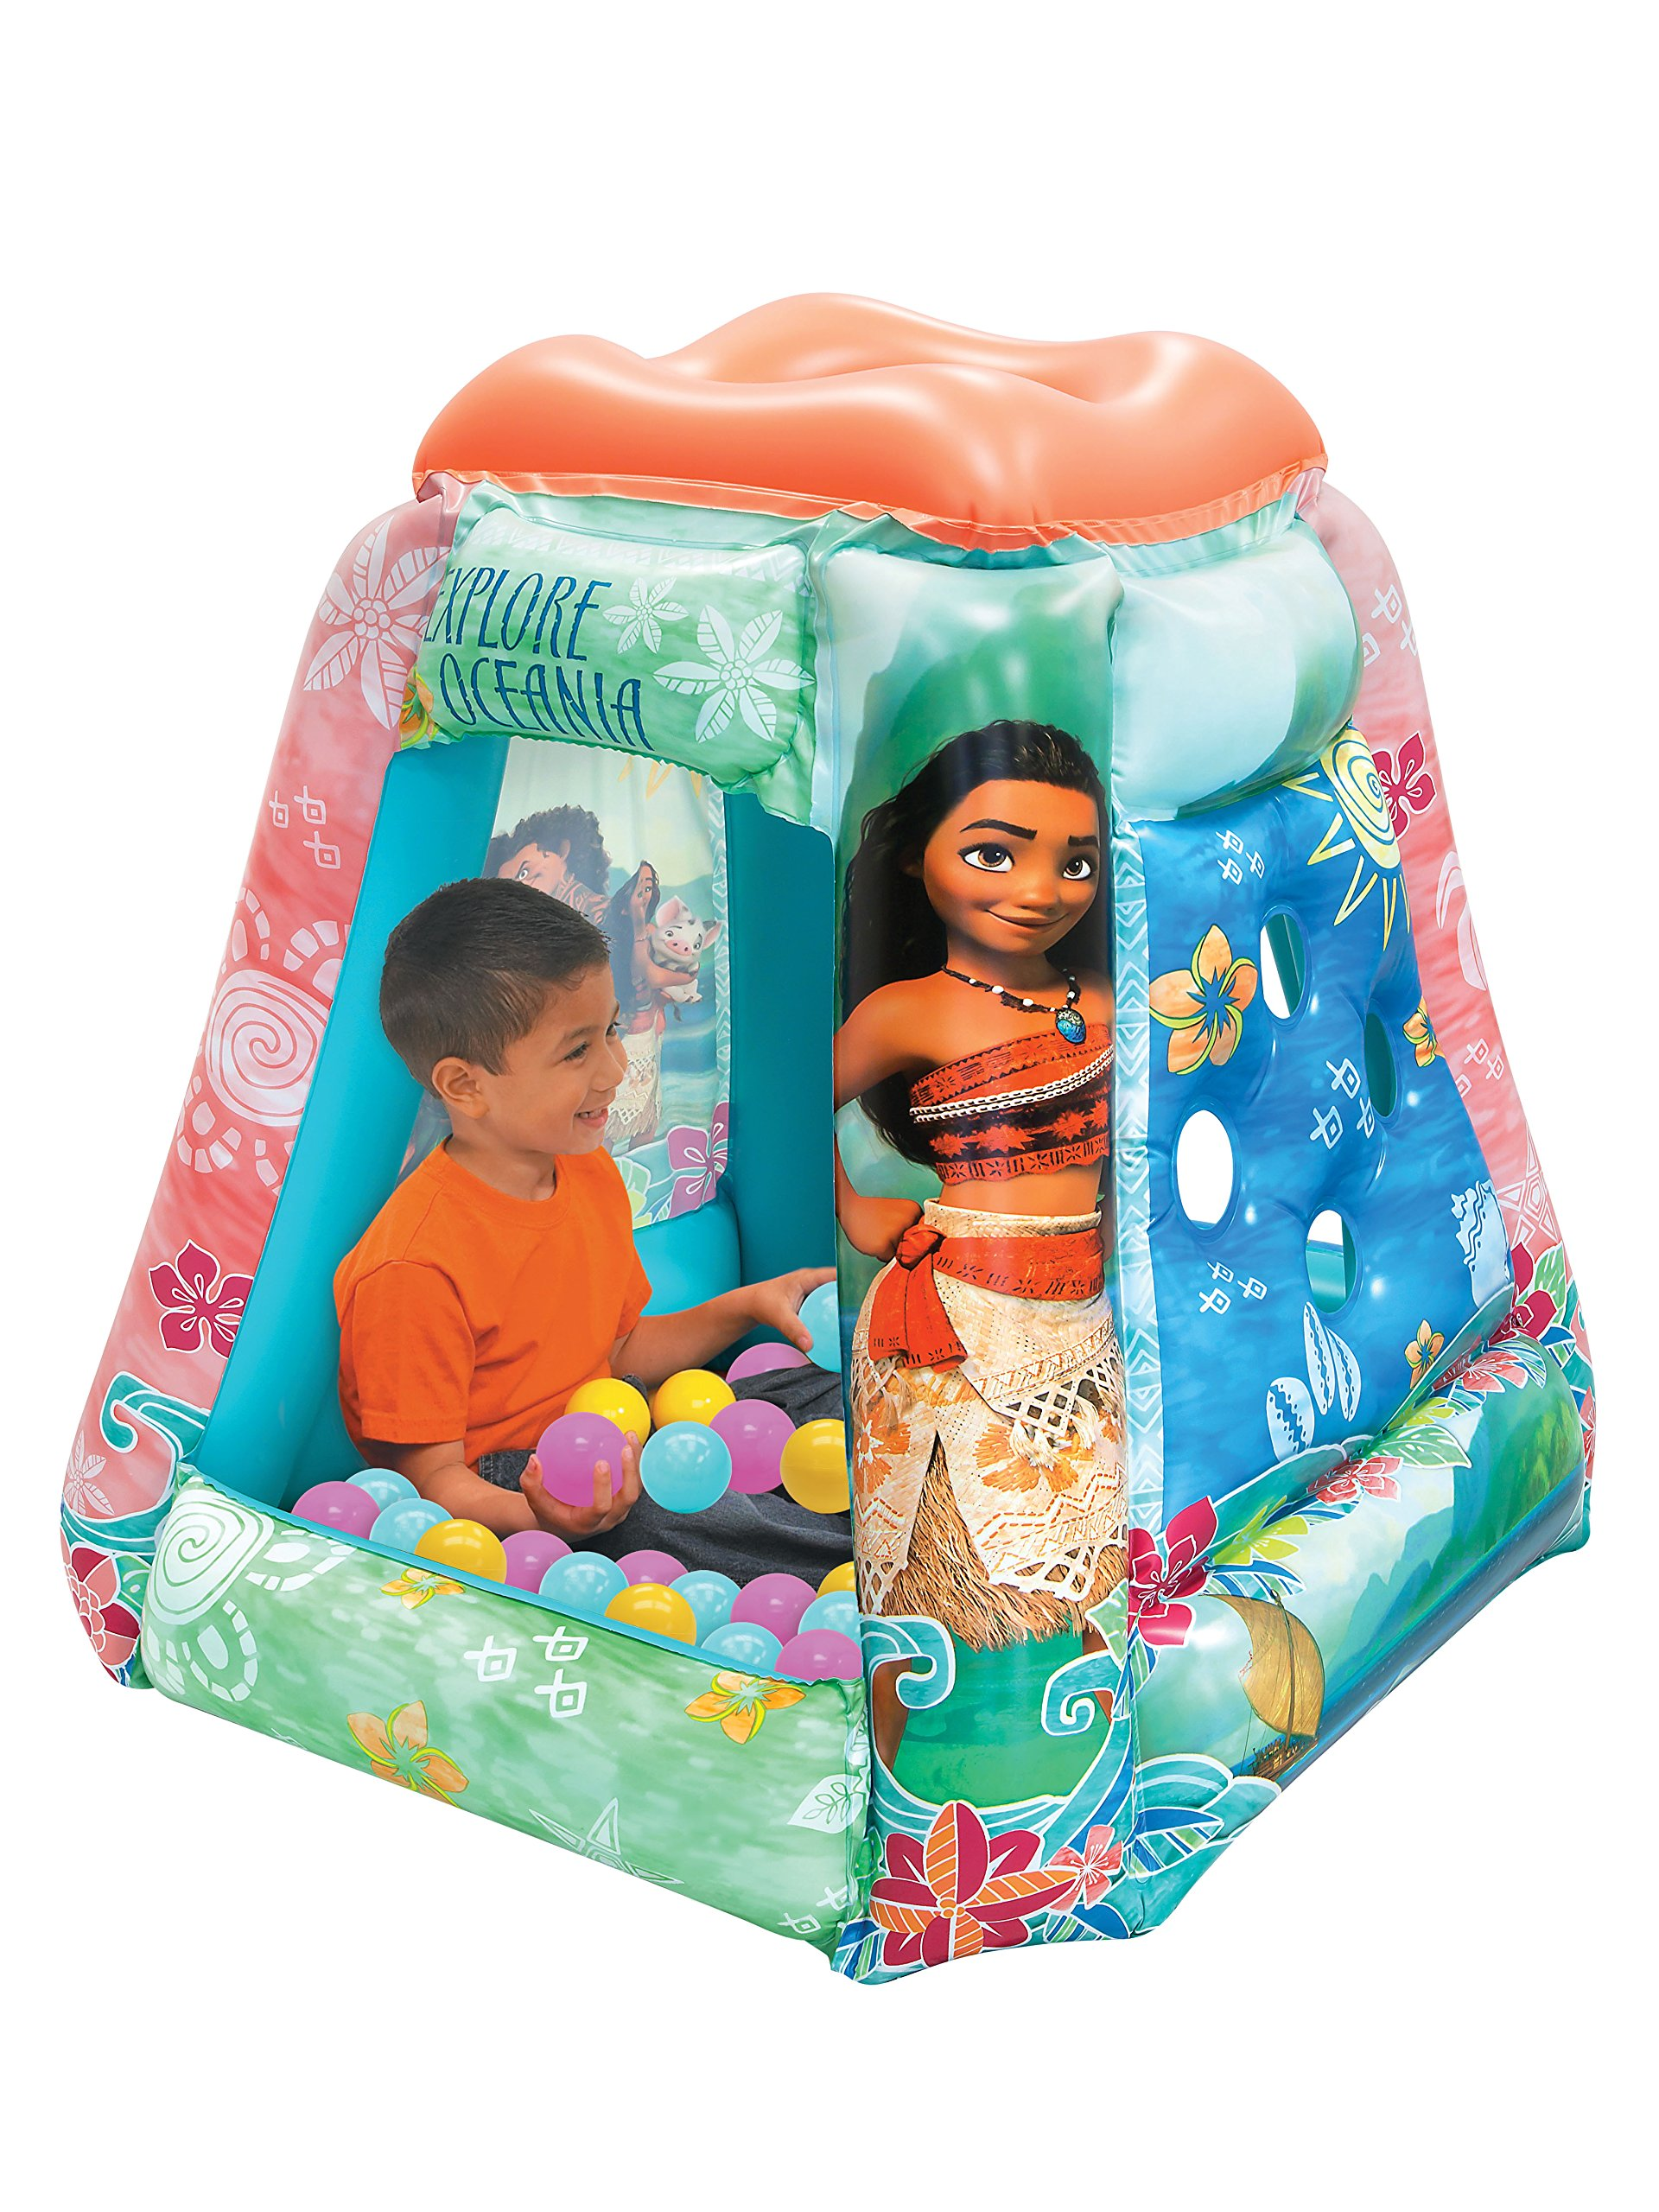 Moana Ball Pit, 1 Inflatable & 20 Sof-Flex Balls, Aqua/Pink, 37''W x 37''D x 34''H by Moose Mountain